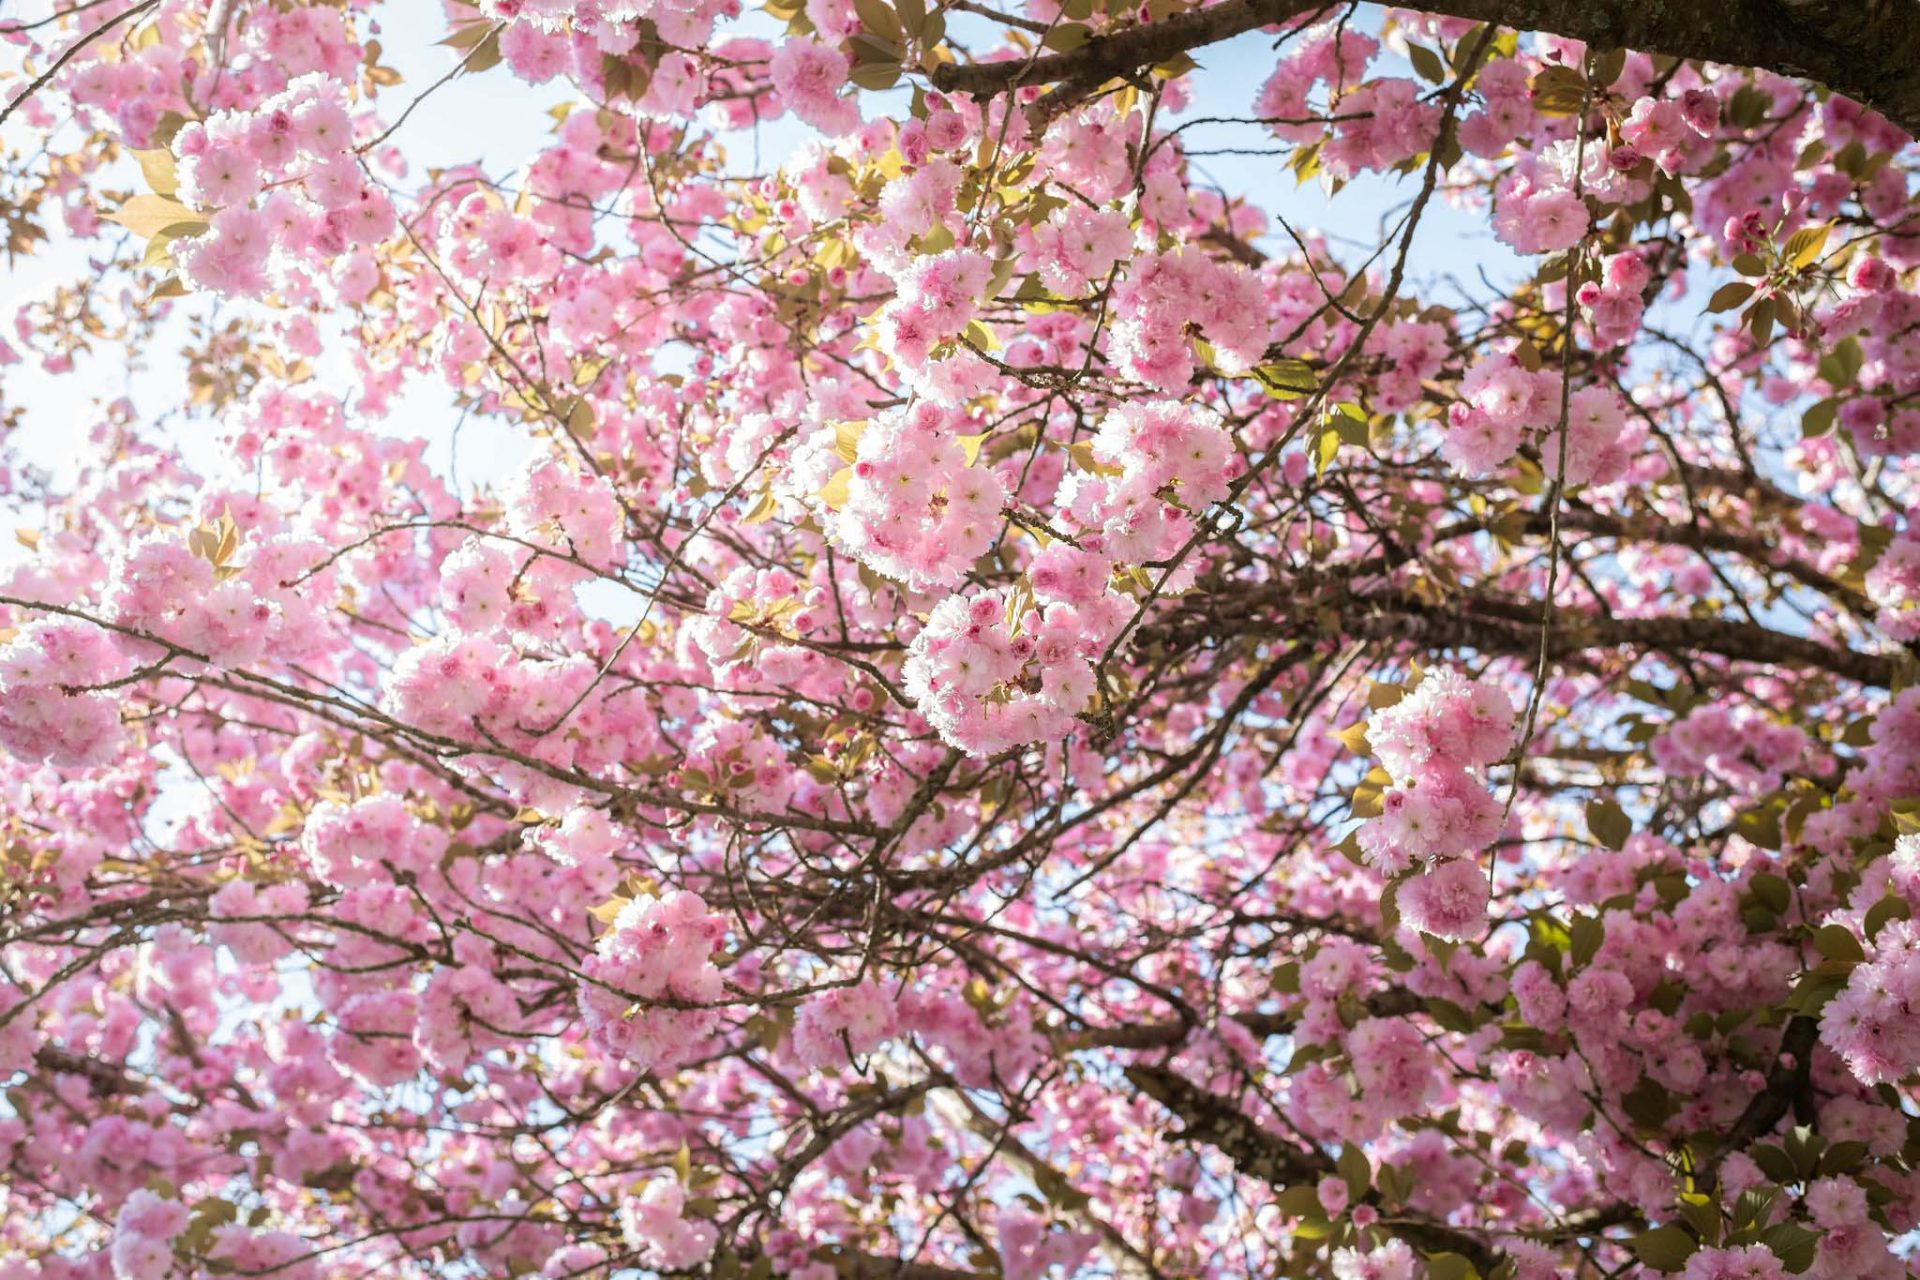 A close-up of a cherry blossom tree.